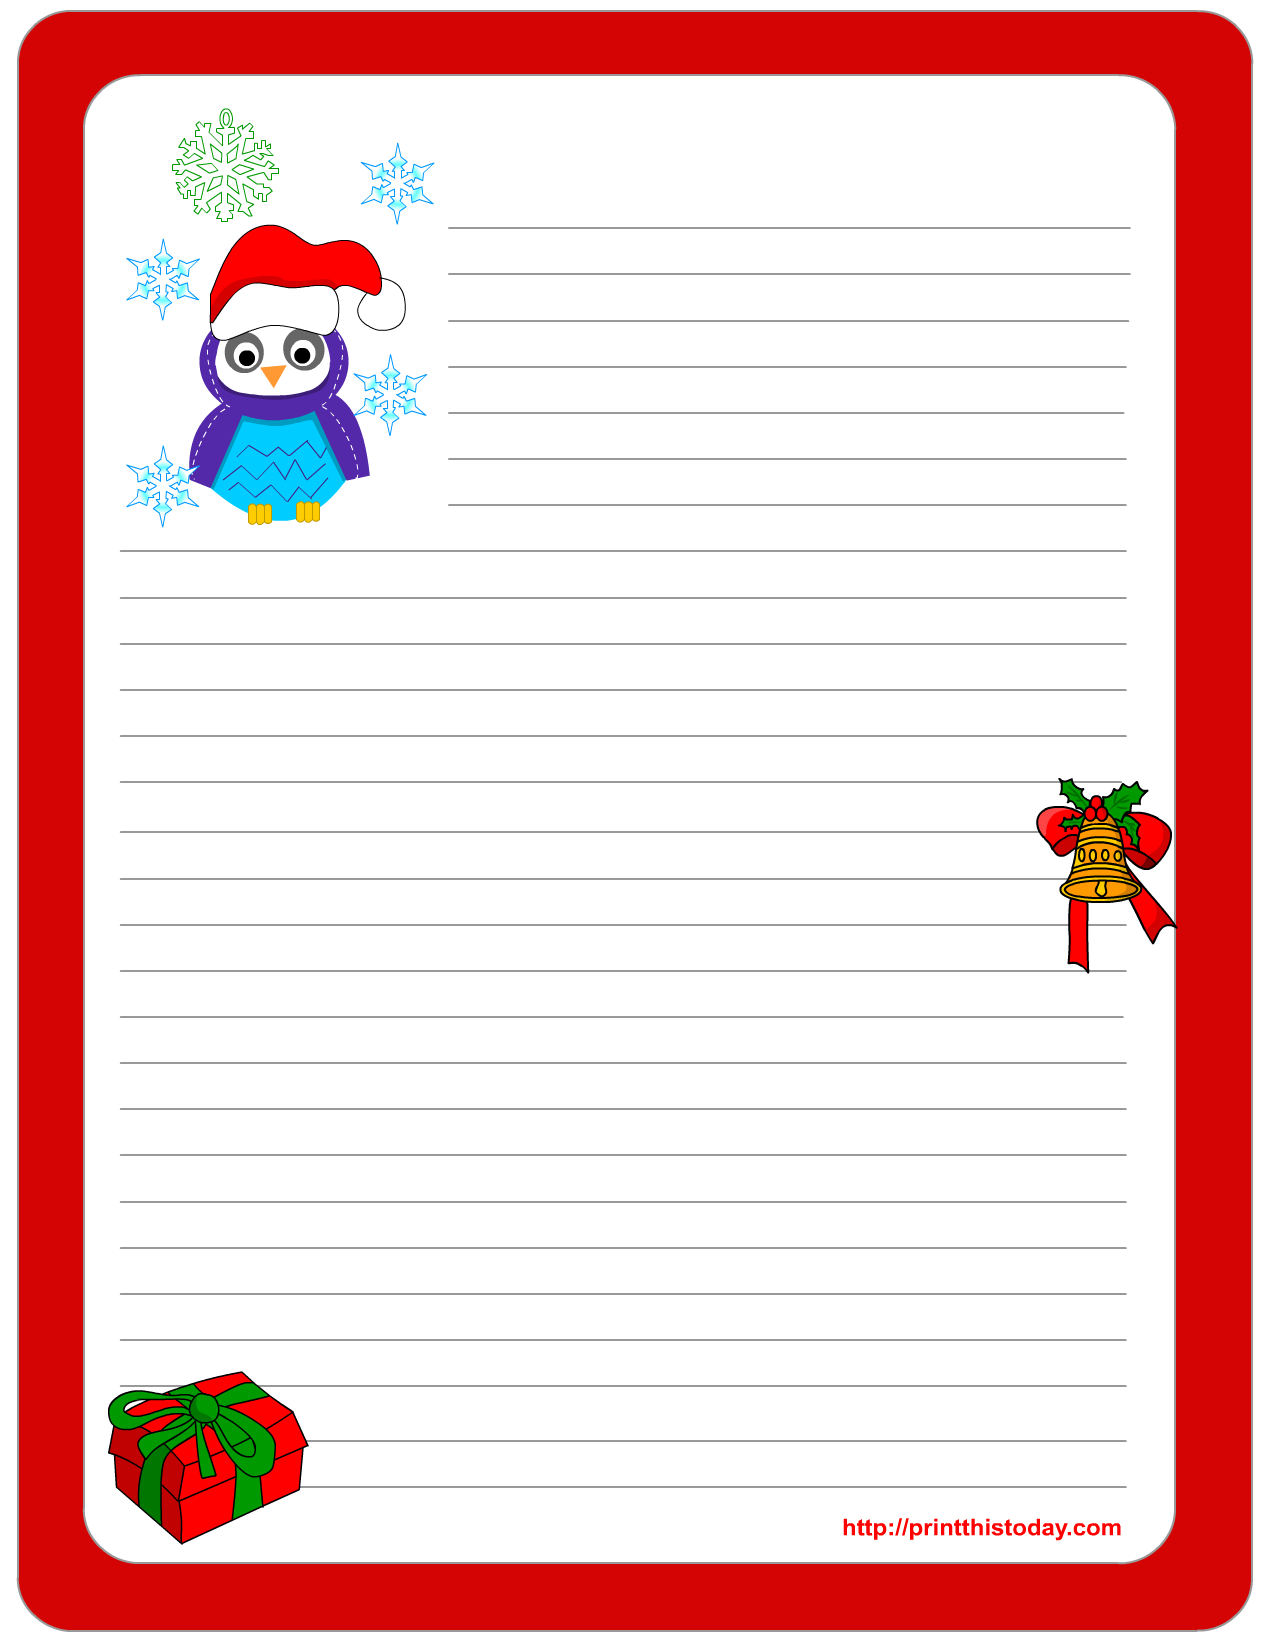 graphic about Printable Christmas Stationery identified as Owl Xmas Printable Stationery, Bookmarks, Sweet